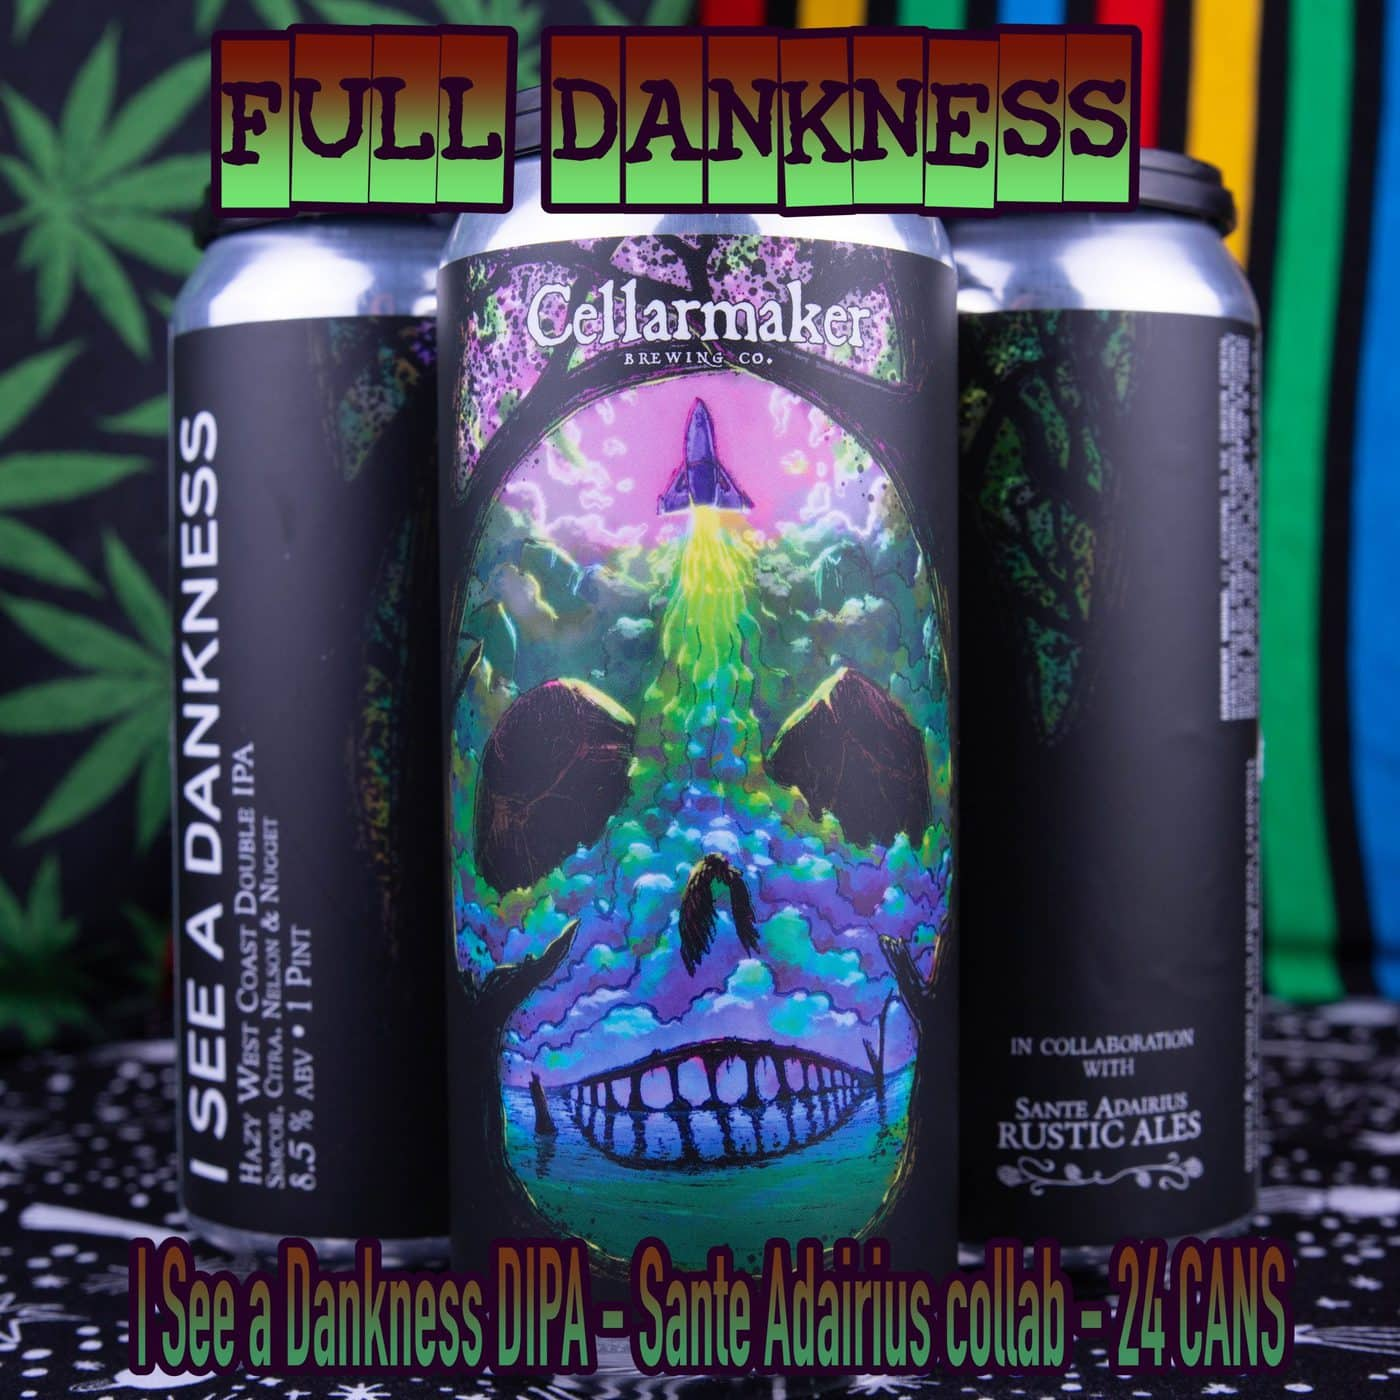 FULL CASE 24 CANS I See A Dankness DIPA – Sante Adairius Collab – Shipping Out Tuesday 4/13 For Next Day Delivery*